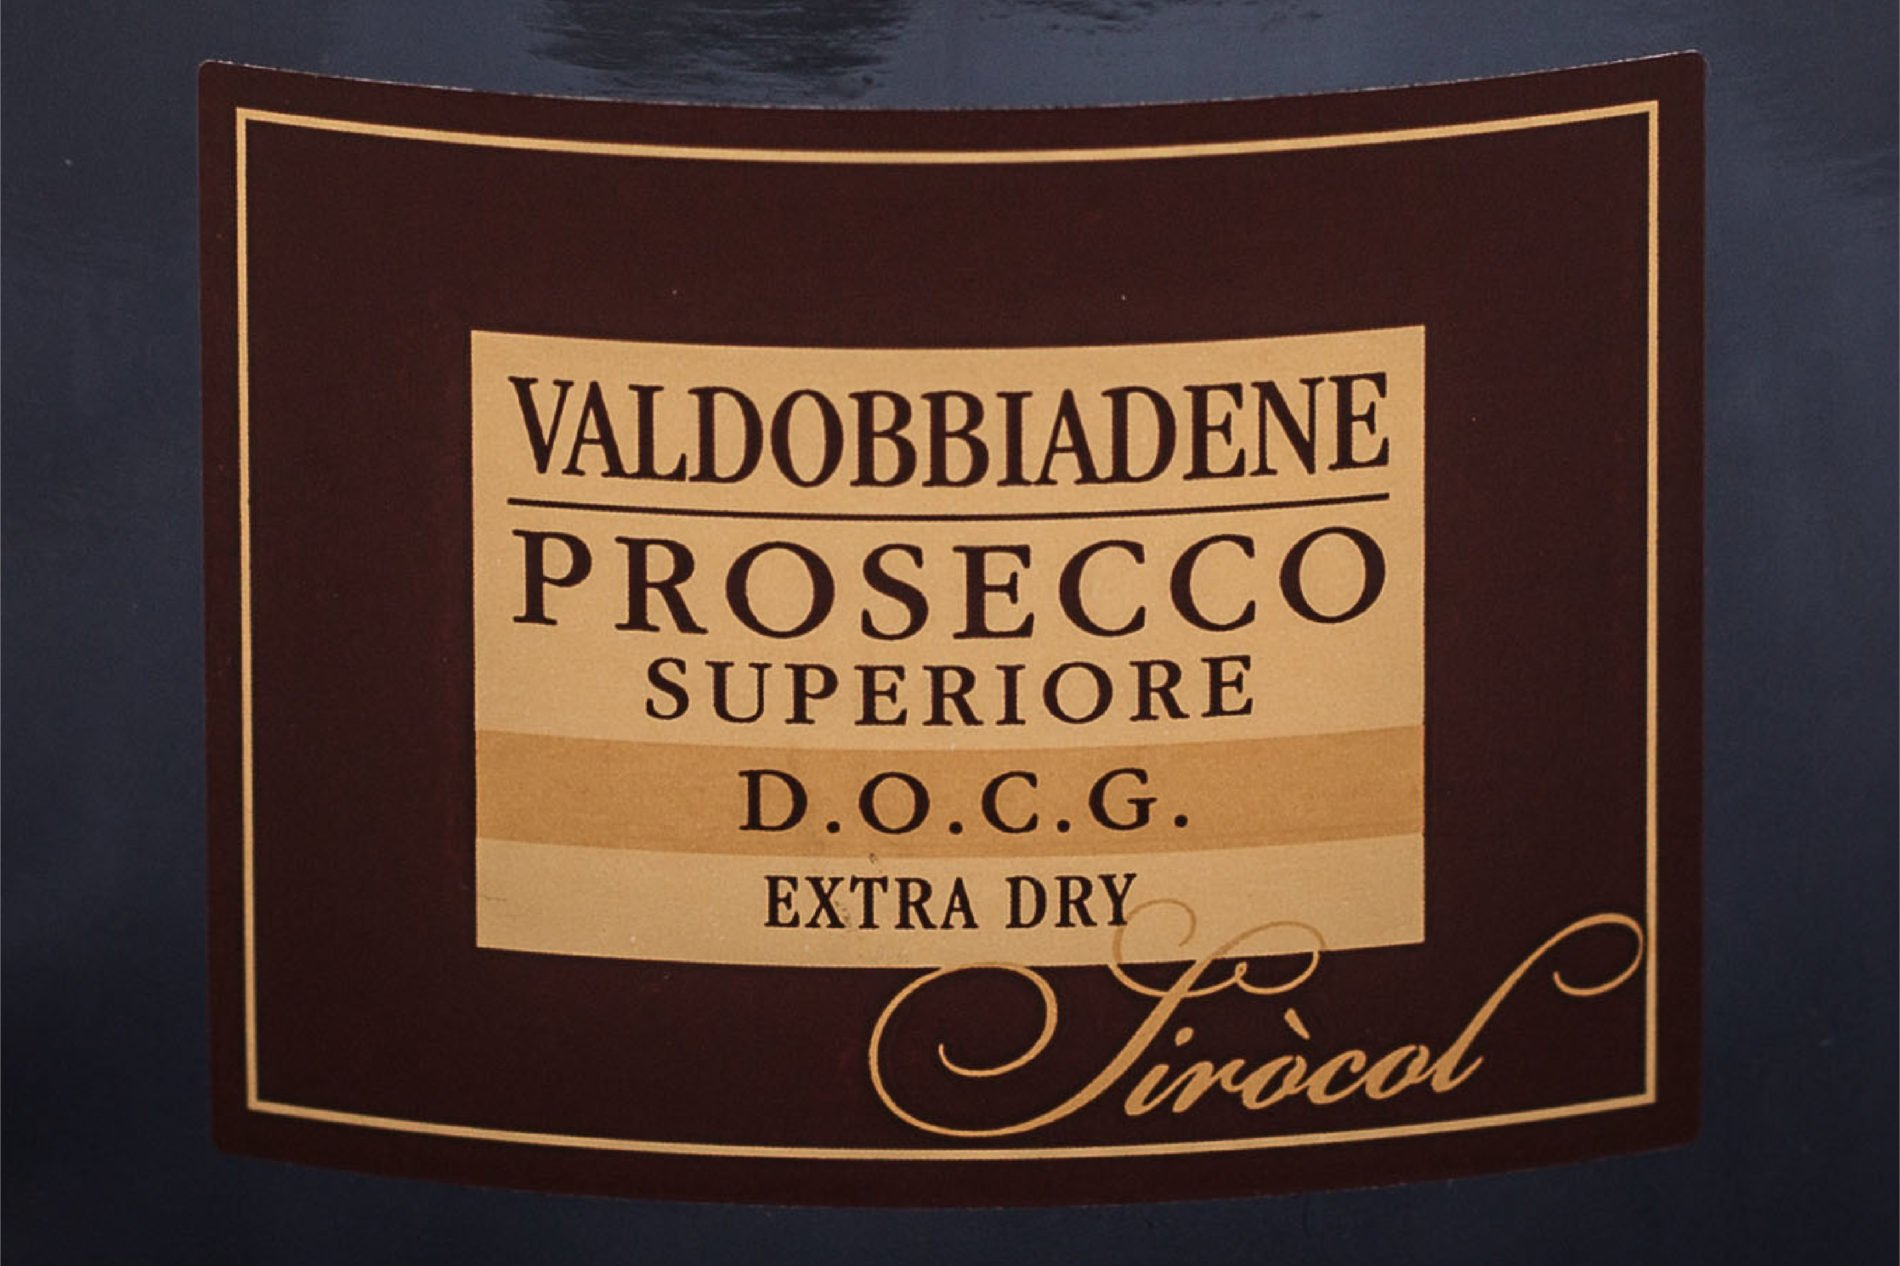 Image of vintage prosecco label